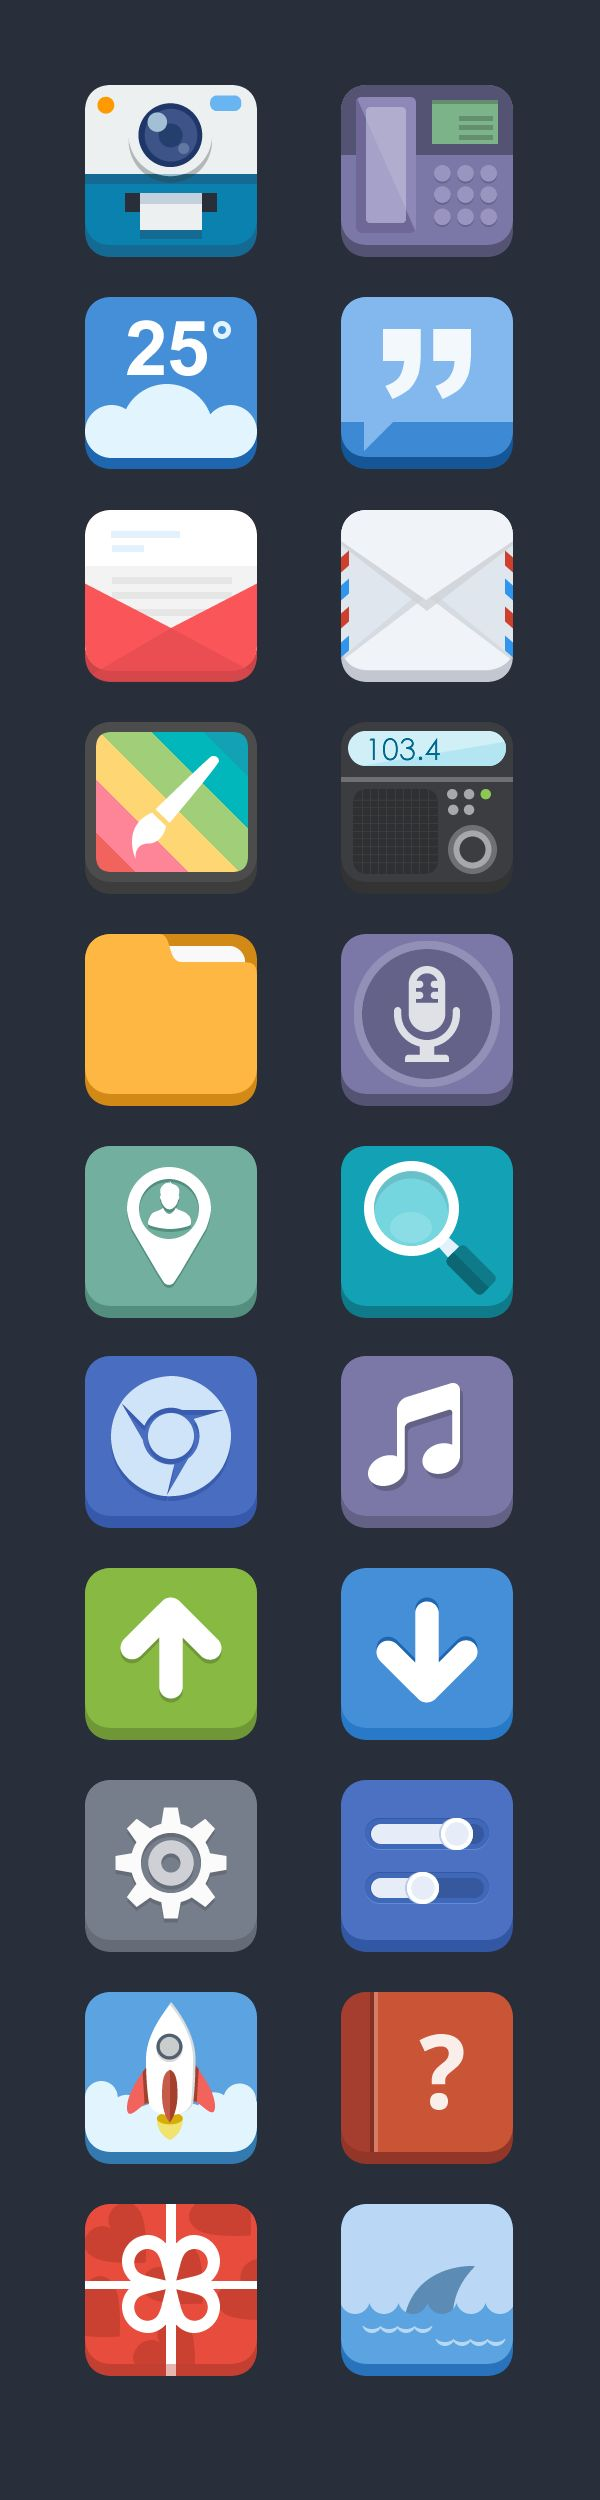 3D Flat Icons 2 by Blues design, via Behance                              …